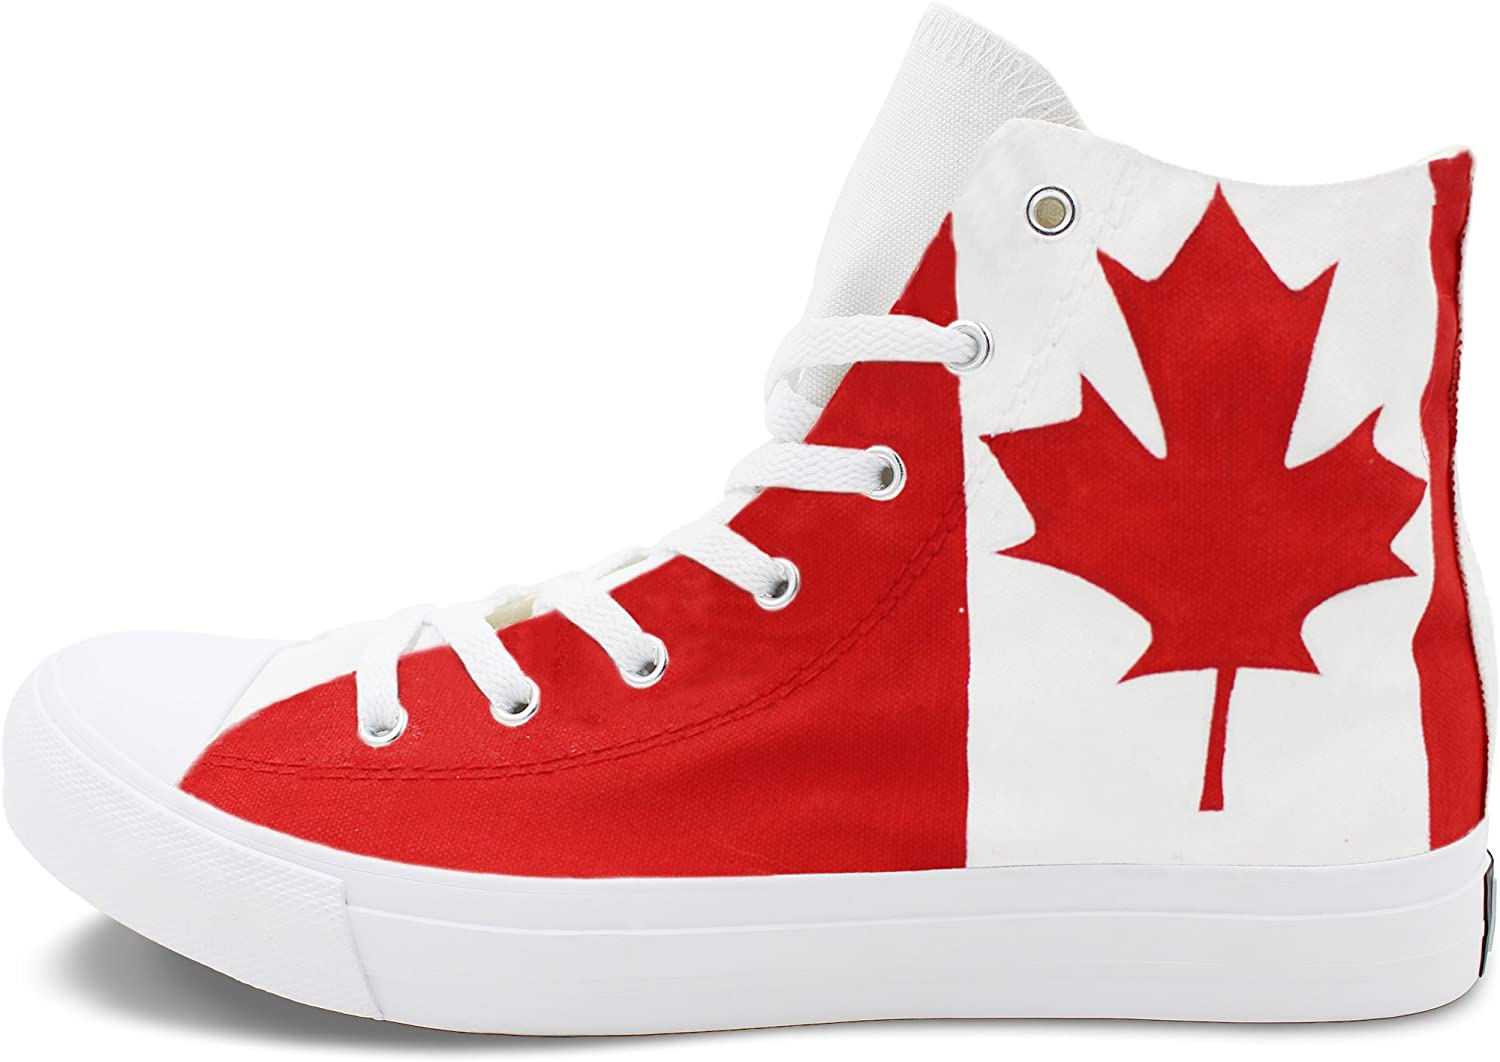 Wen Fire Hand Painted Flag Shoes Canada Maple Leaf Woman Man Canvas Sneakers